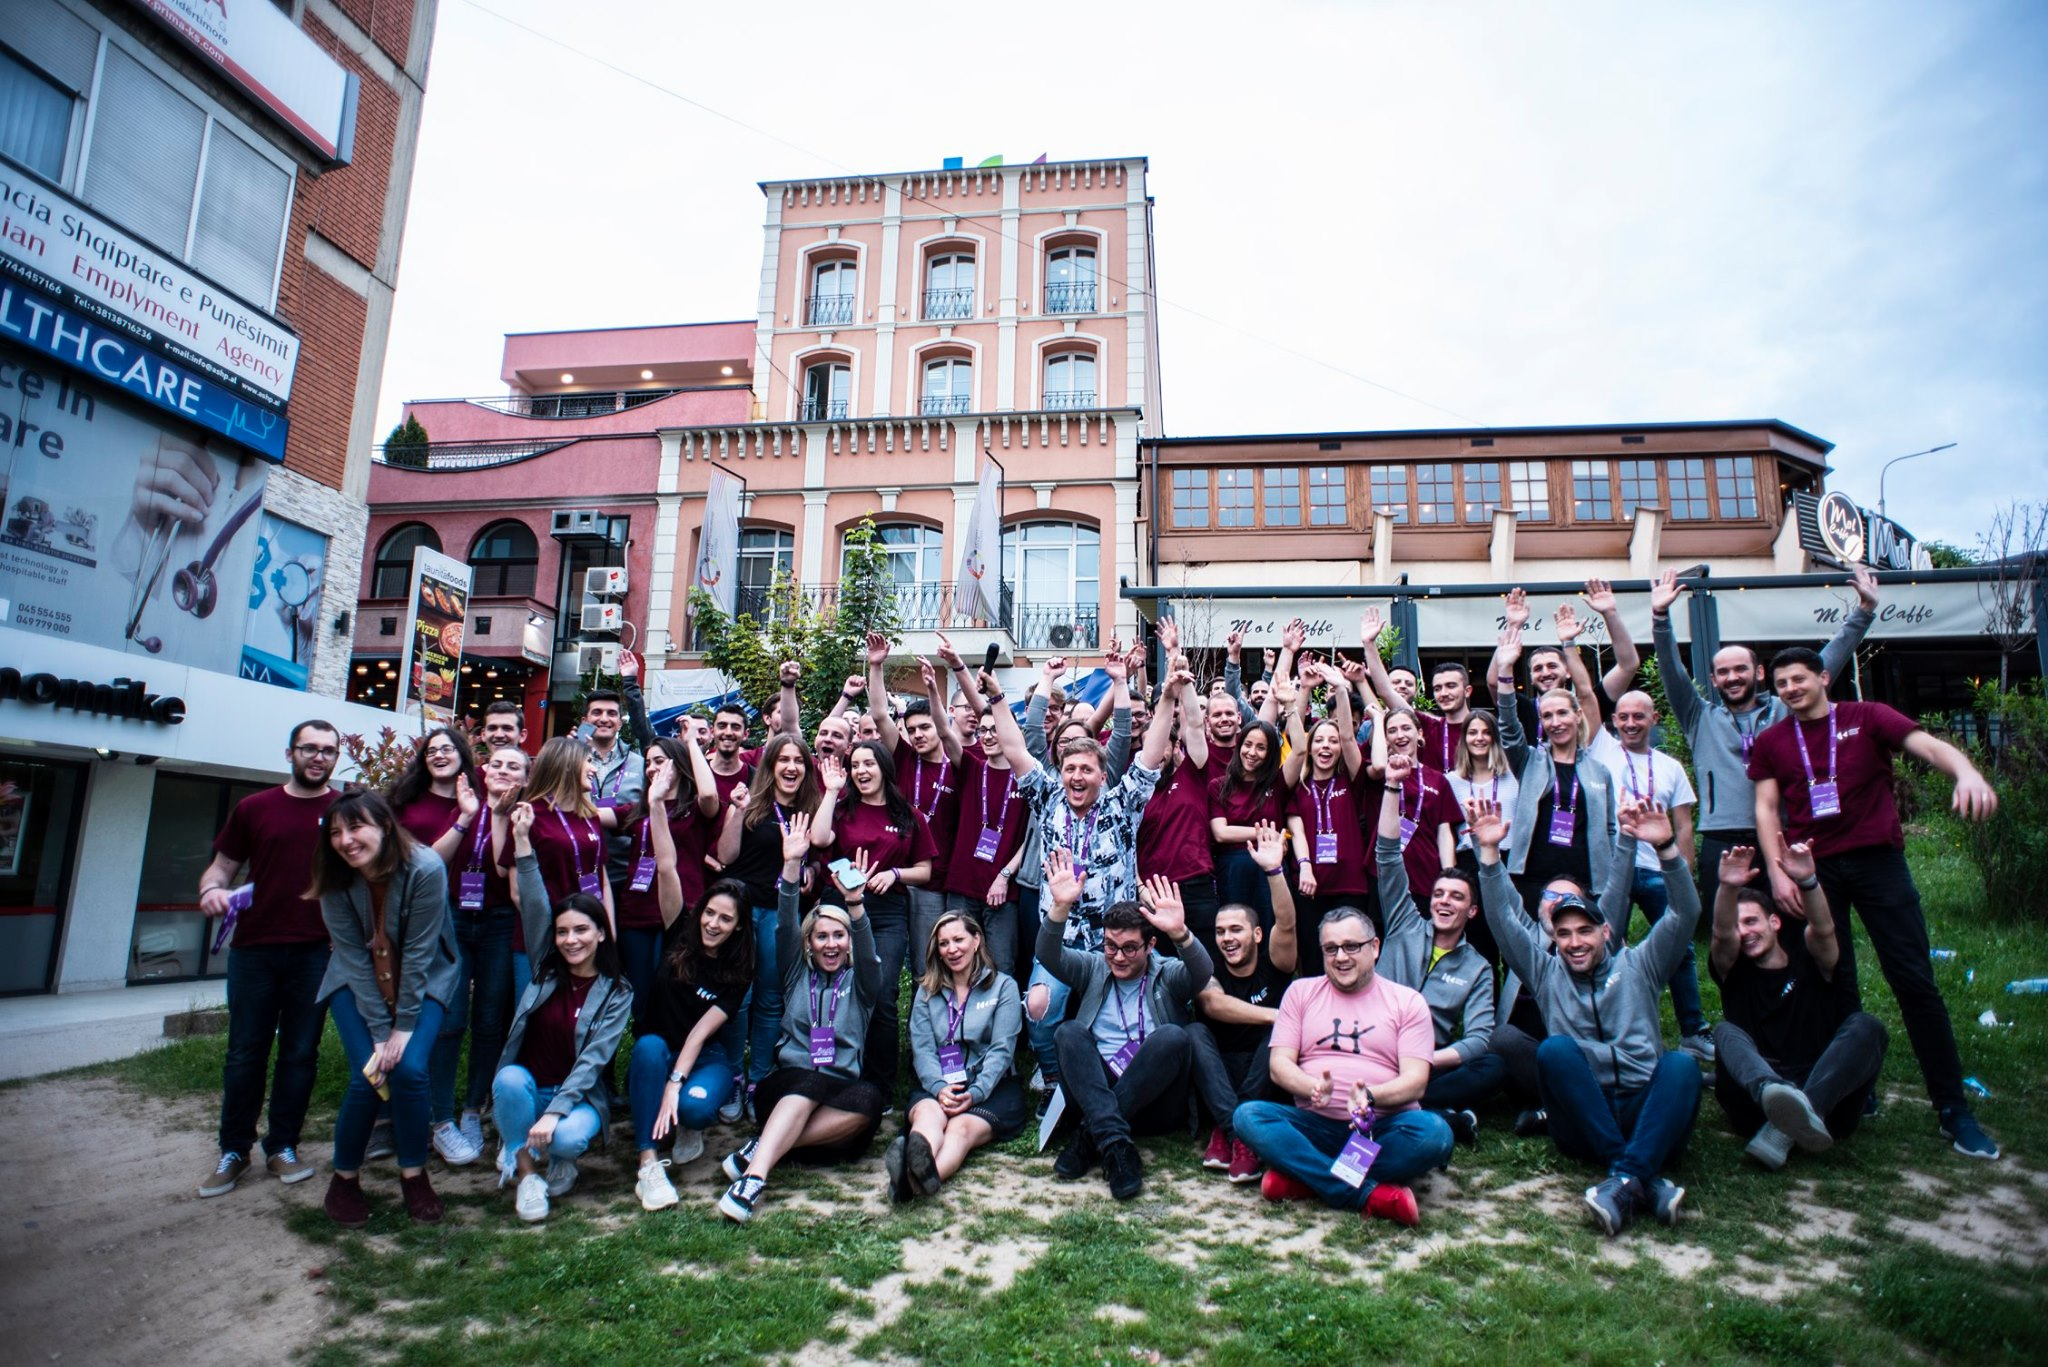 The salt in our stars: Techstars Startup Weekend